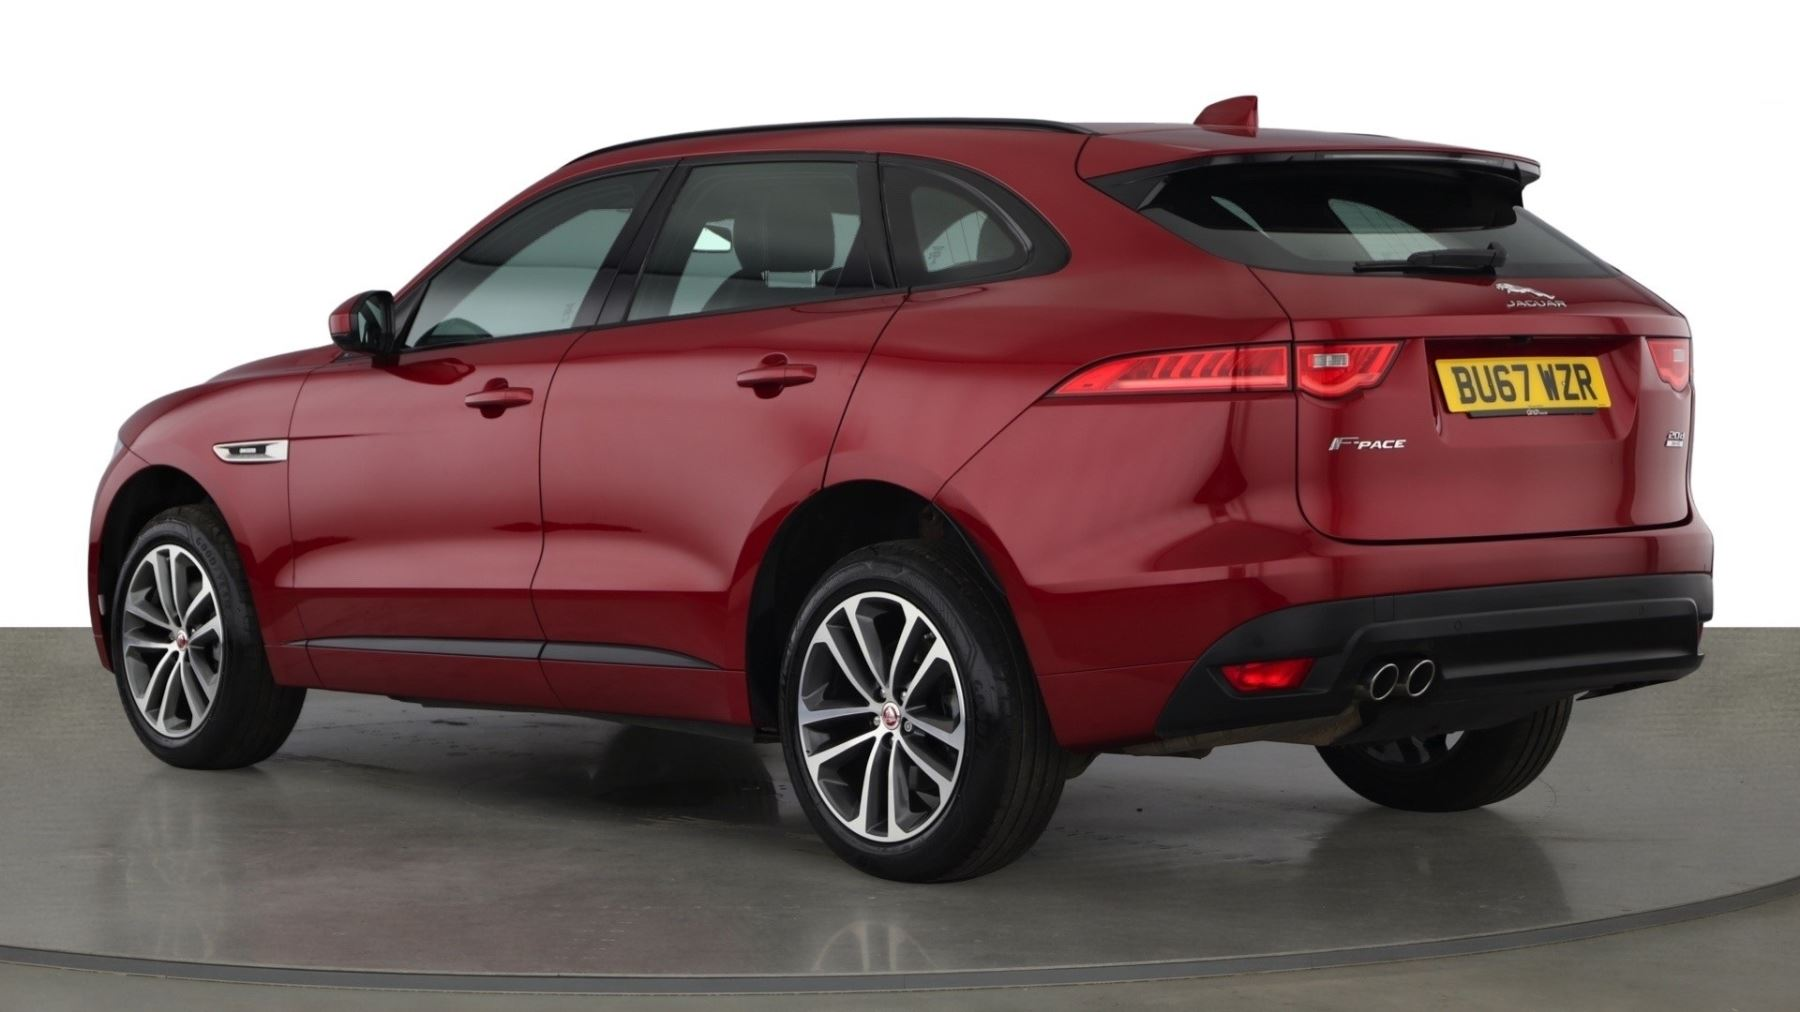 Jaguar F-PACE 2.0d R-Sport AWD - Sliding Panoramic Roof - Rear View Camera image 4